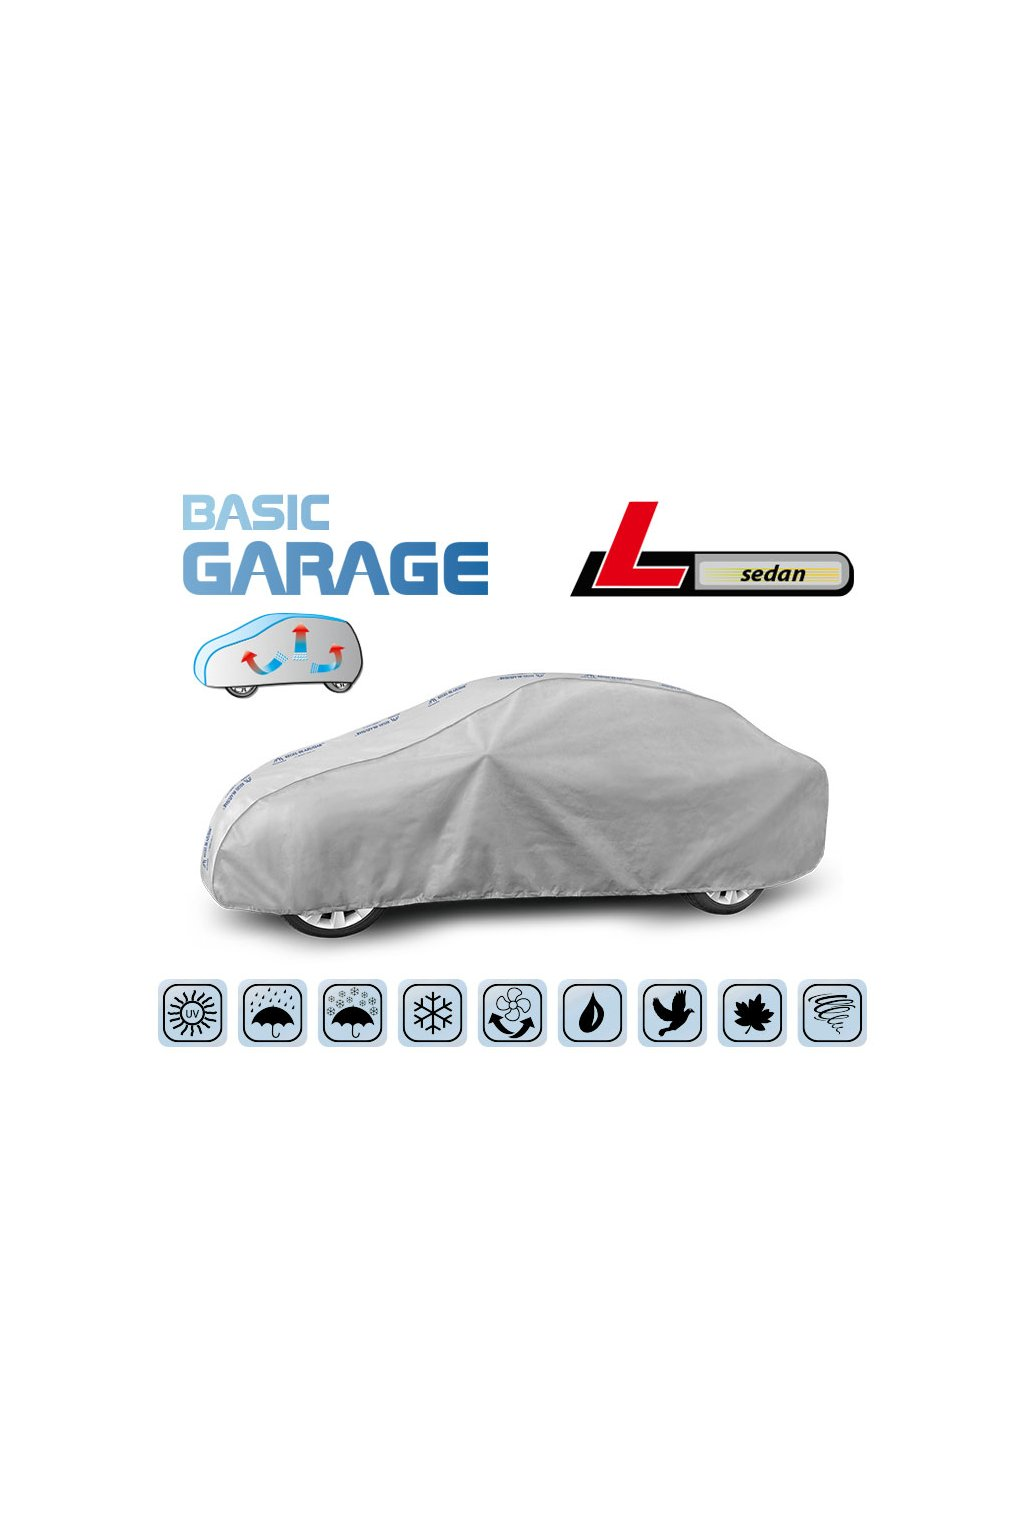 basic garage L sd 3 art 5 3963 241 3021